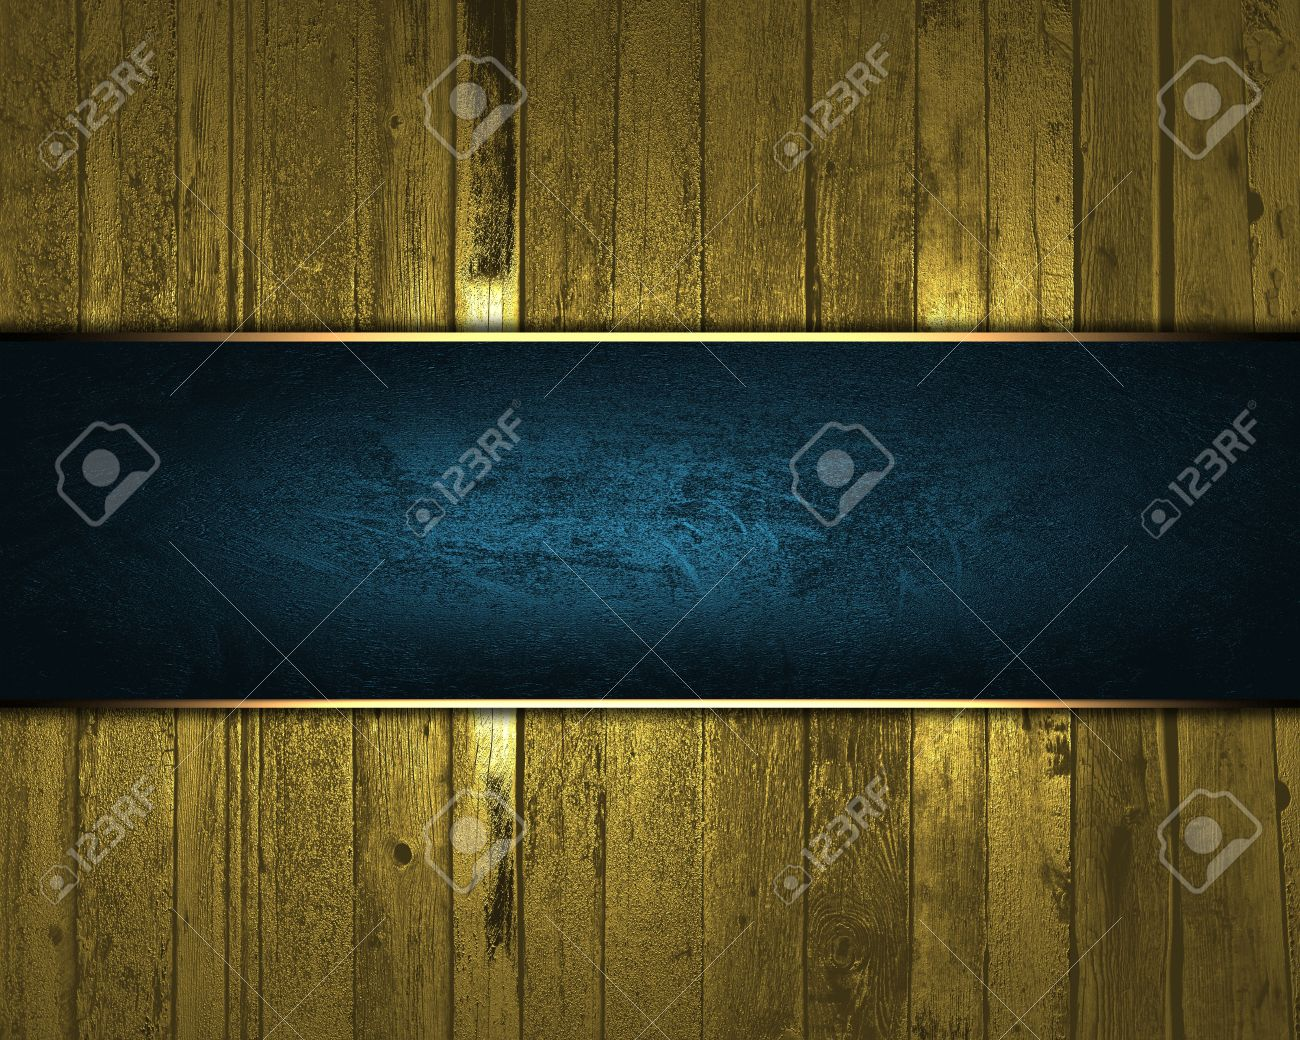 Nameplate Template | Design Template Gold Wooden Texture With Blue Nameplate For